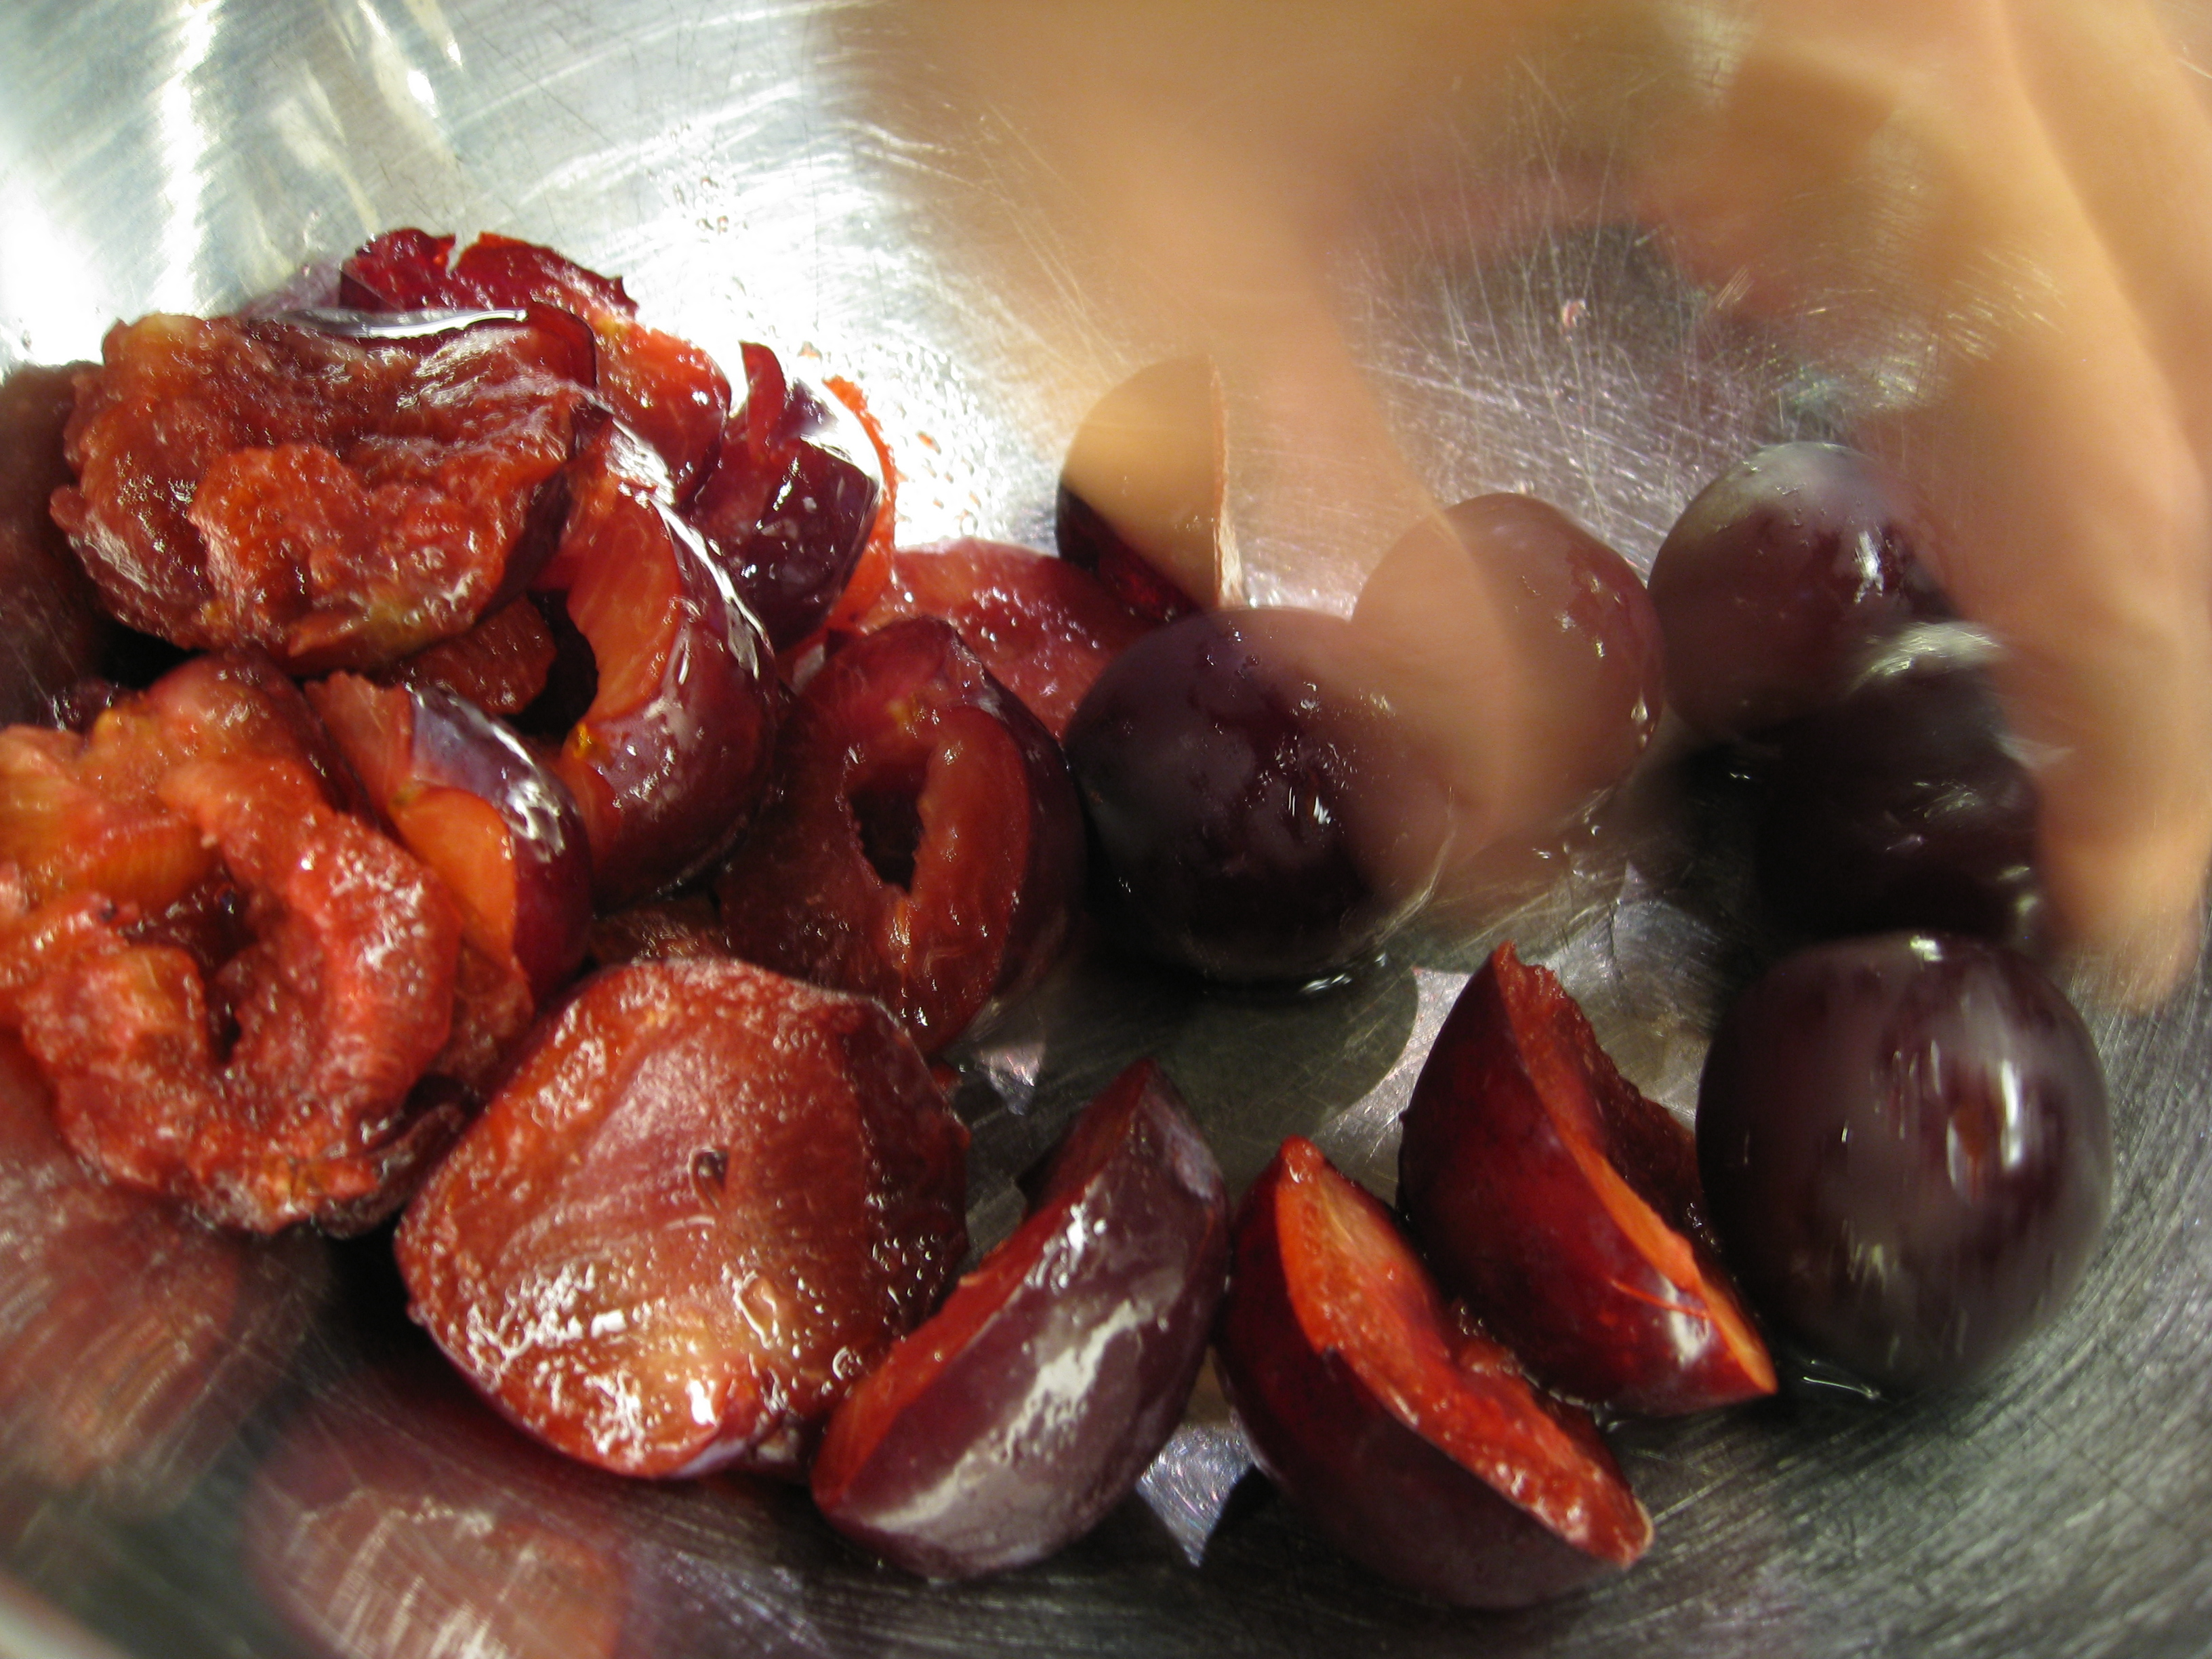 Half and pit plums for this recipe.